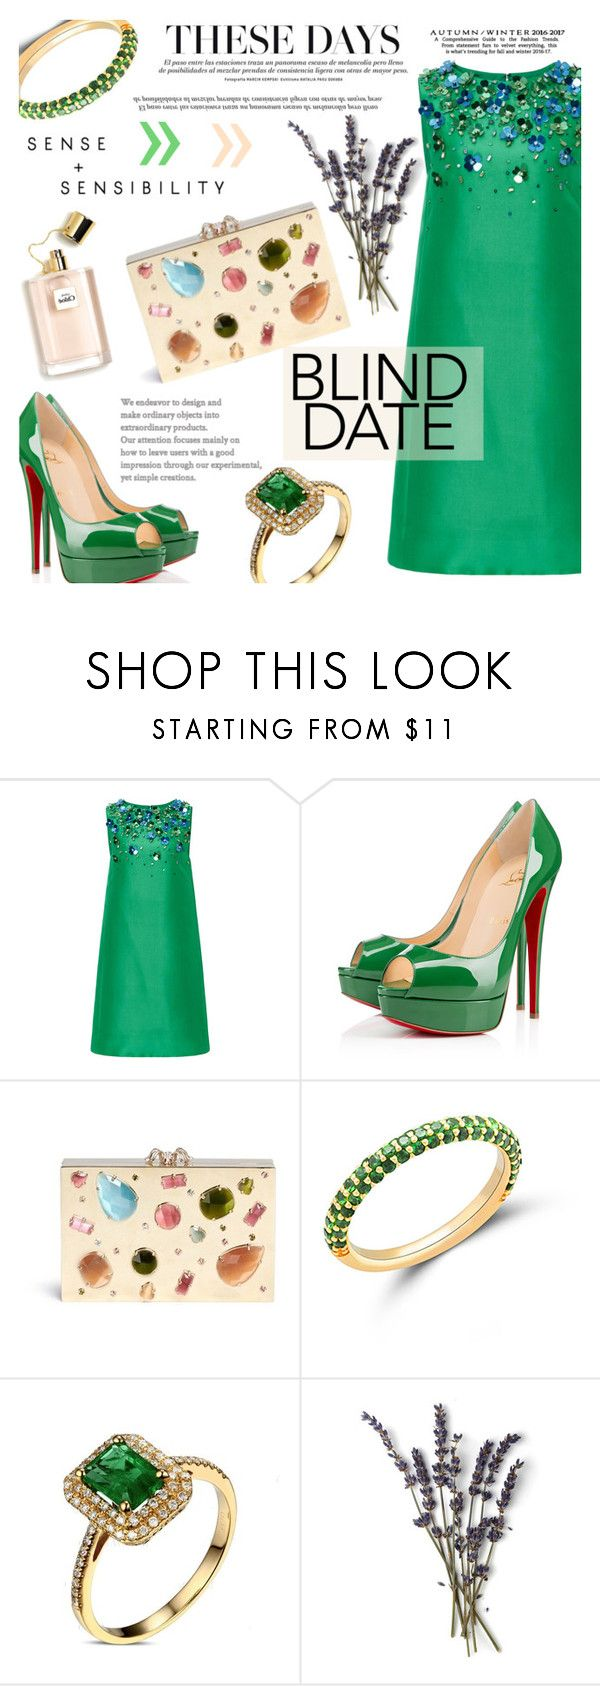 View the latest ready-to-wear, womenswear, menswear, shoes & accessories.